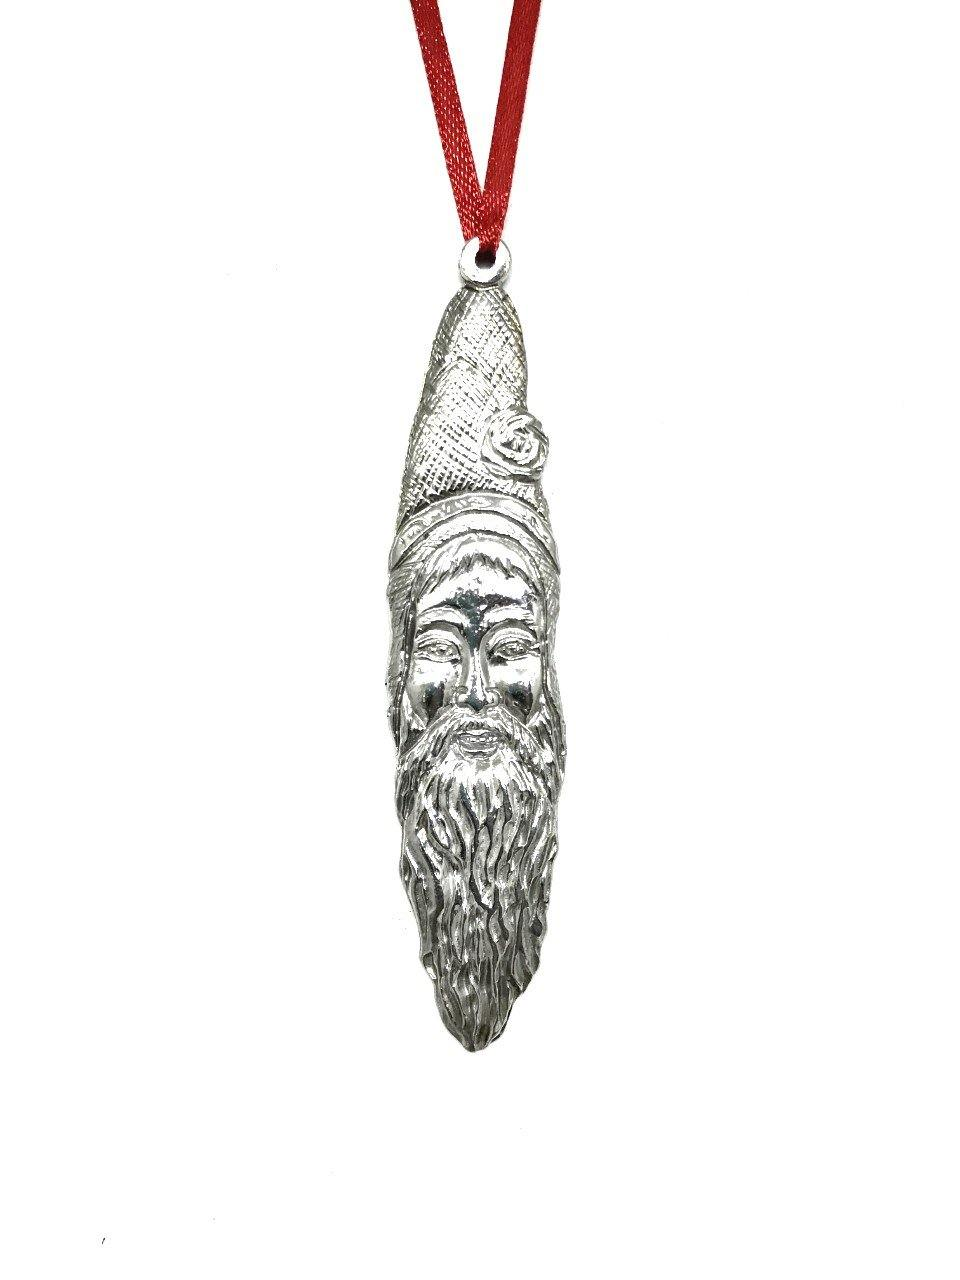 874 Santa Claus Sickle Beard Christmas Holiday Ornament Pewter - House of Morgan Pewter